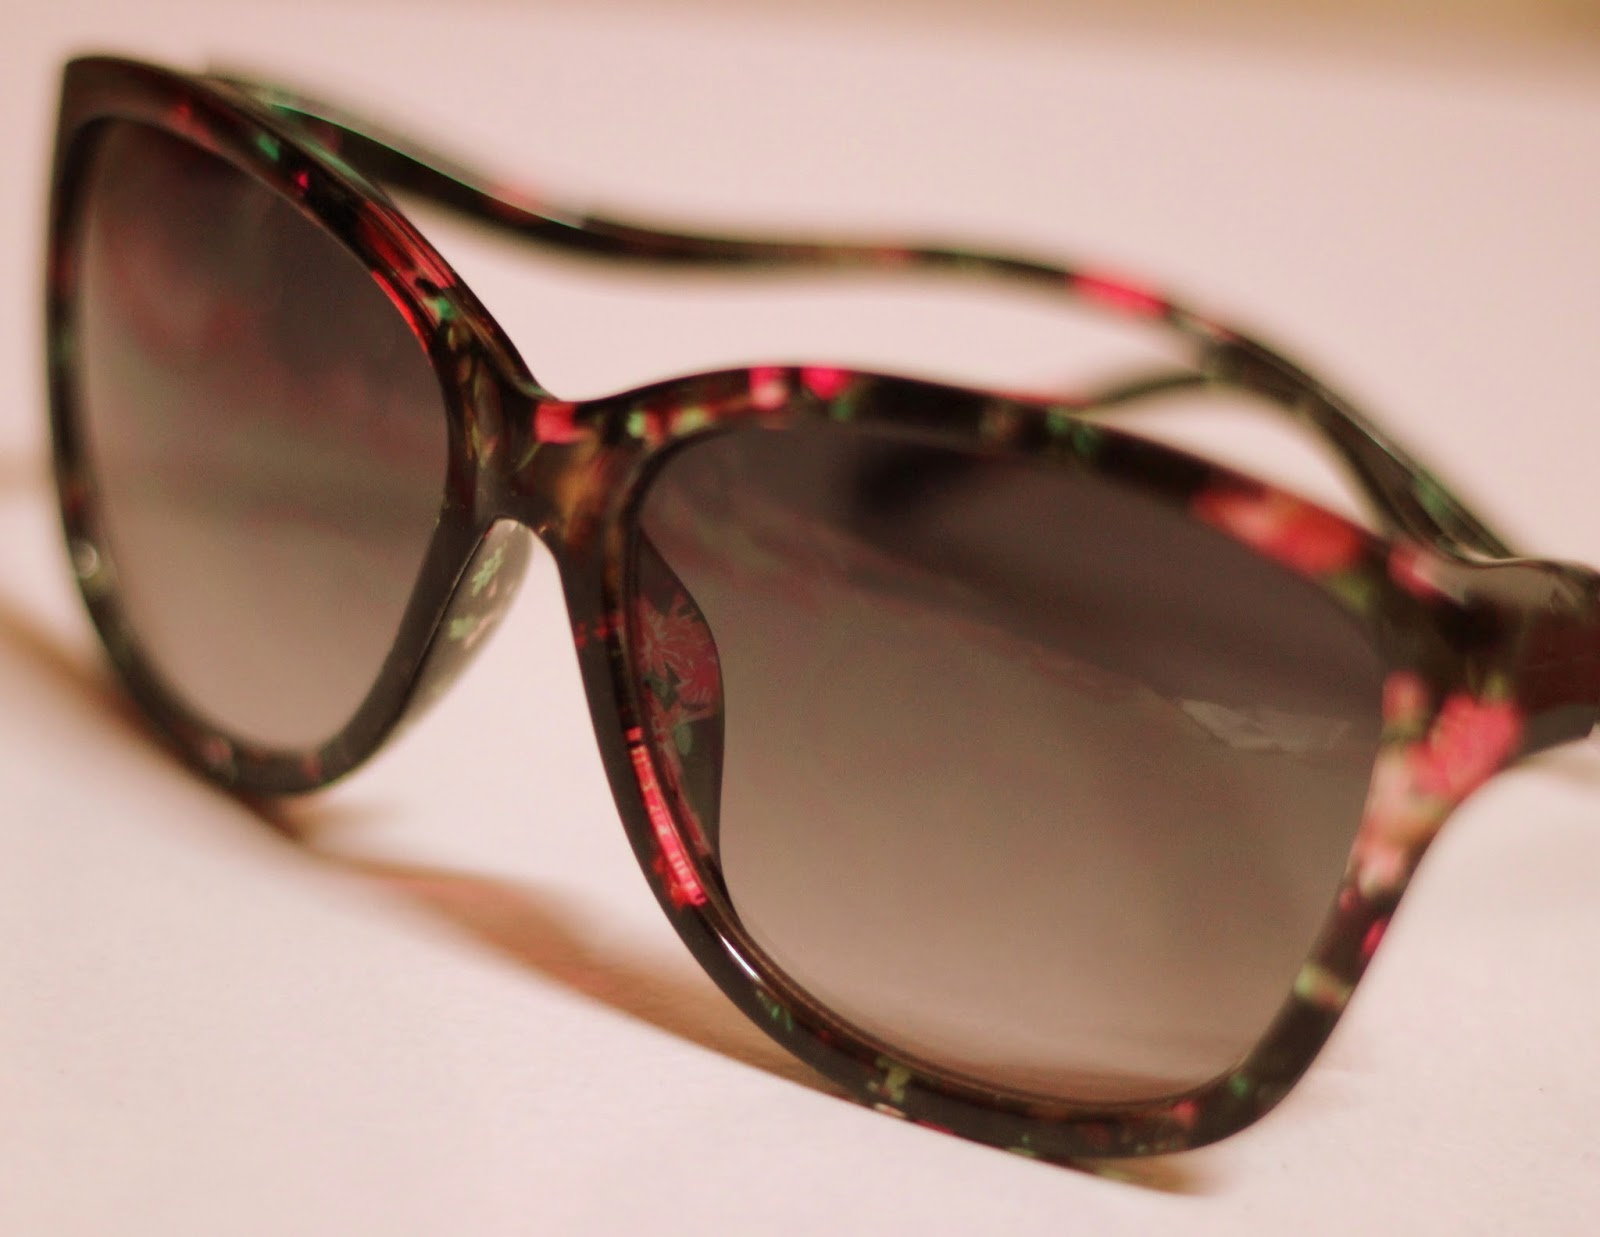 Vision Express Aviators, Floral Sunglasses and Spectacles